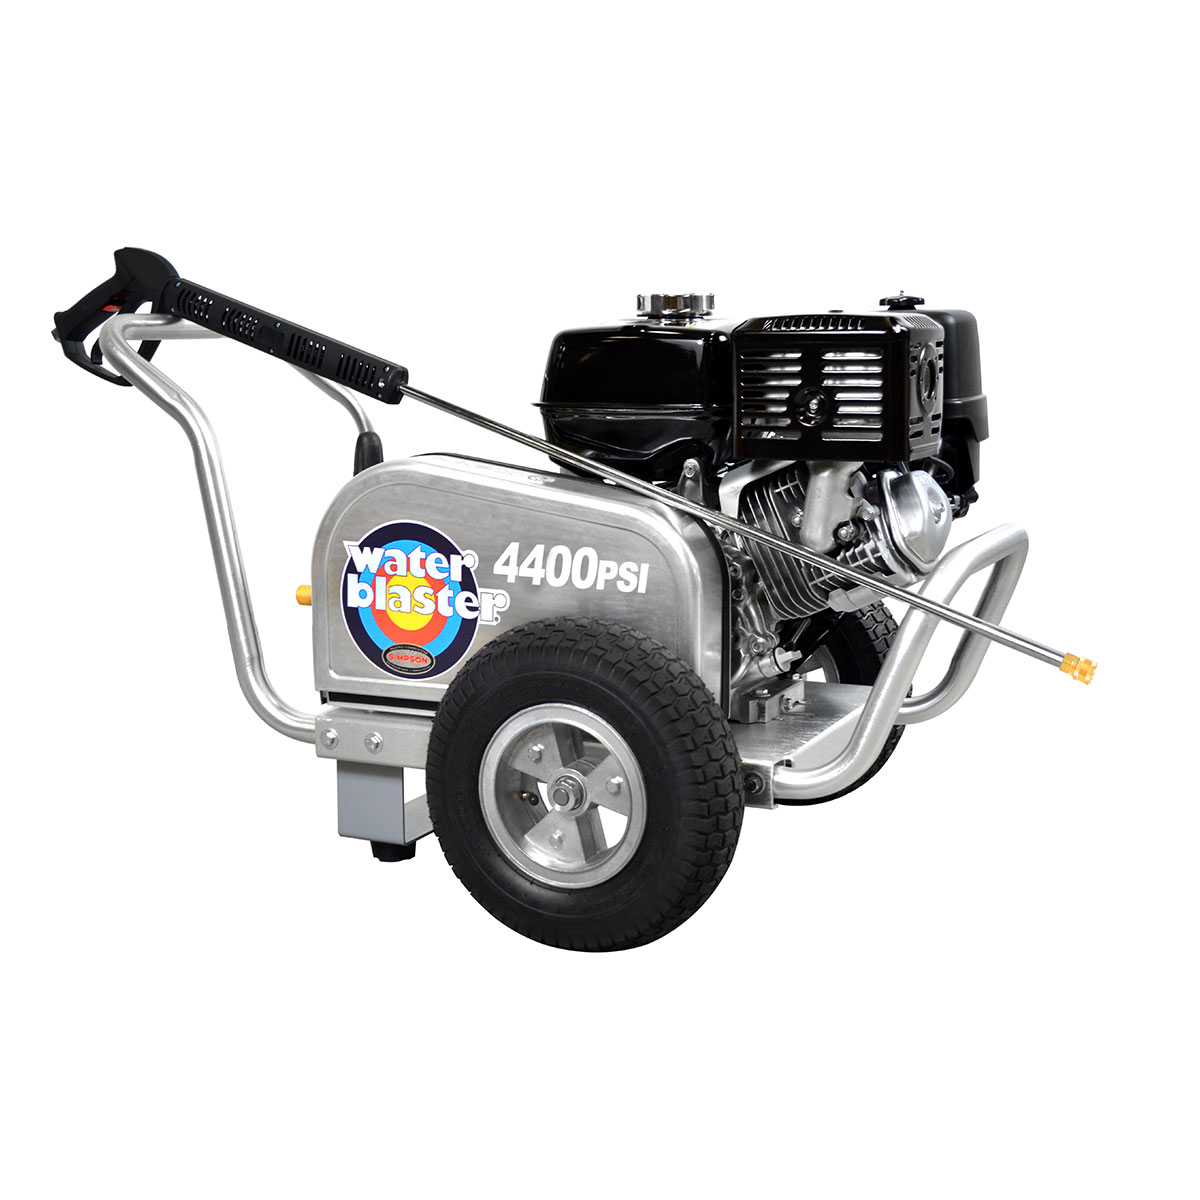 4400 PSI Aluminum Series - Commercial Direct Drive Pressure Washer with a SIMPSON 420 engine and a 50' hose - ALWB60825